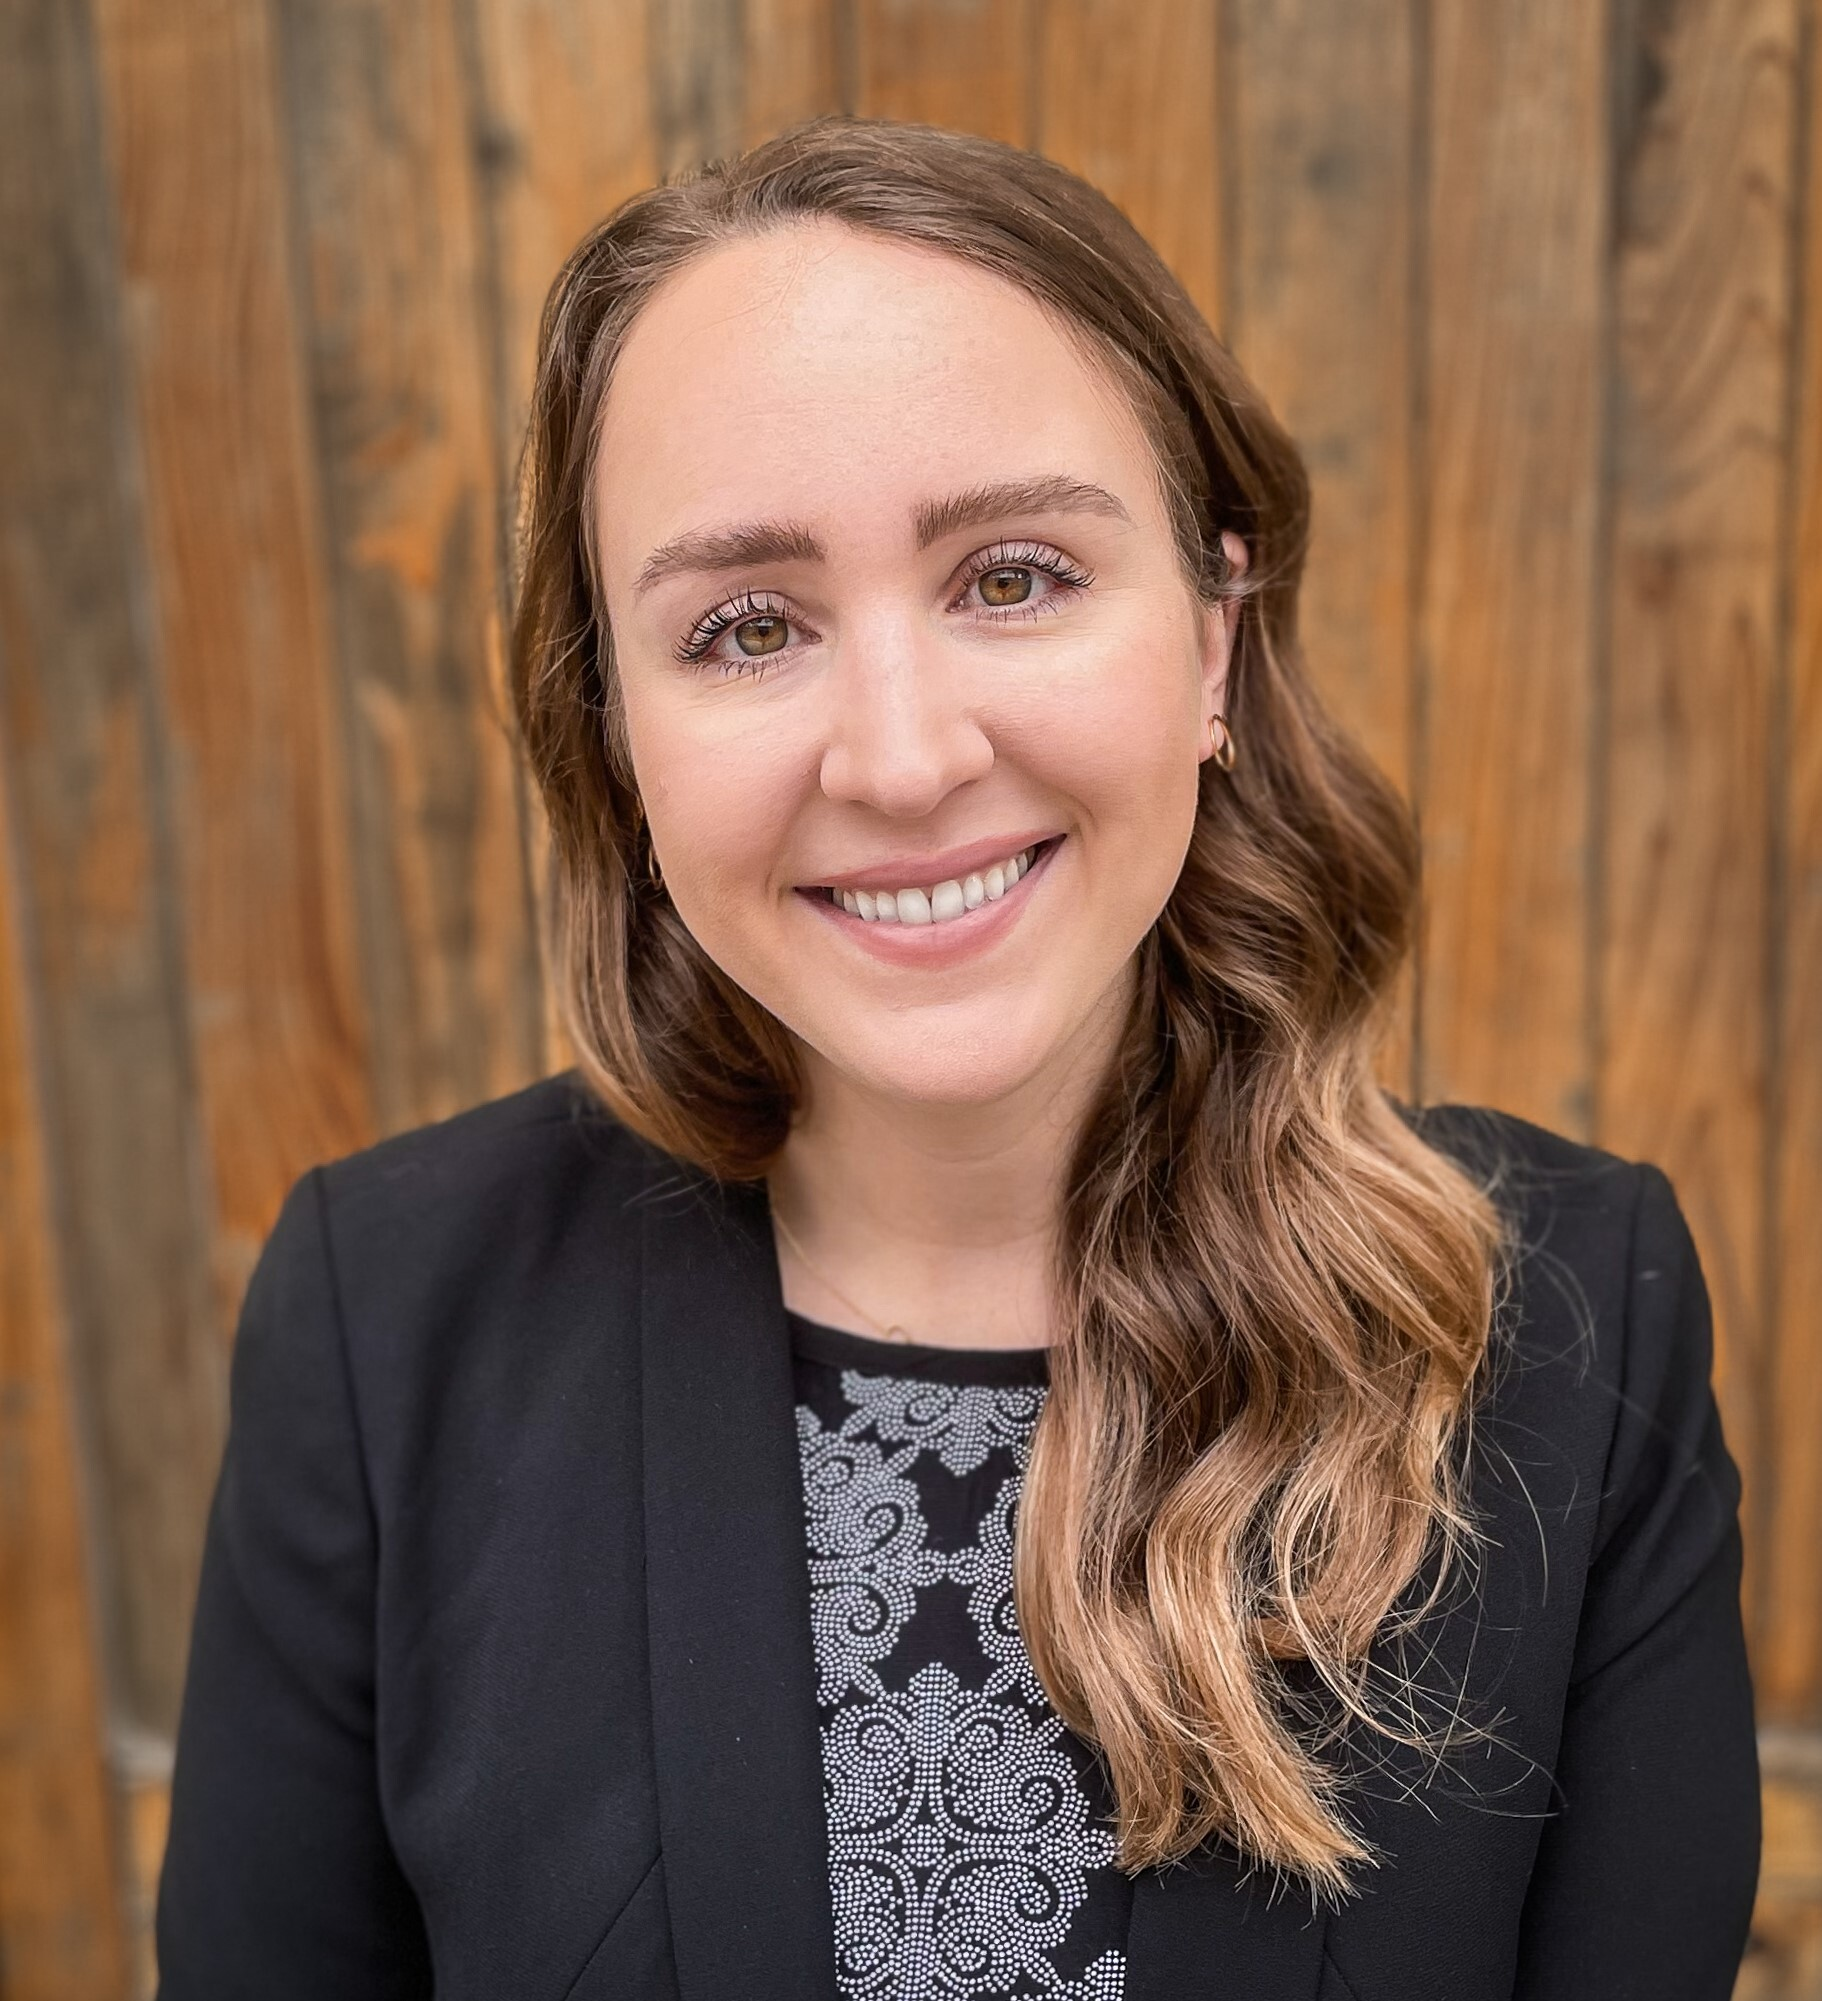 Jessica R. Meeker, MPH, is a third-year doctoral candidate in Epidemiology at the University of Pennsylvania Perelman School Of Medicine where she focuses on the impact of neighborhood-level environmental exposures on maternal health disparities. (Photograph courtesy of Penn Medicine)